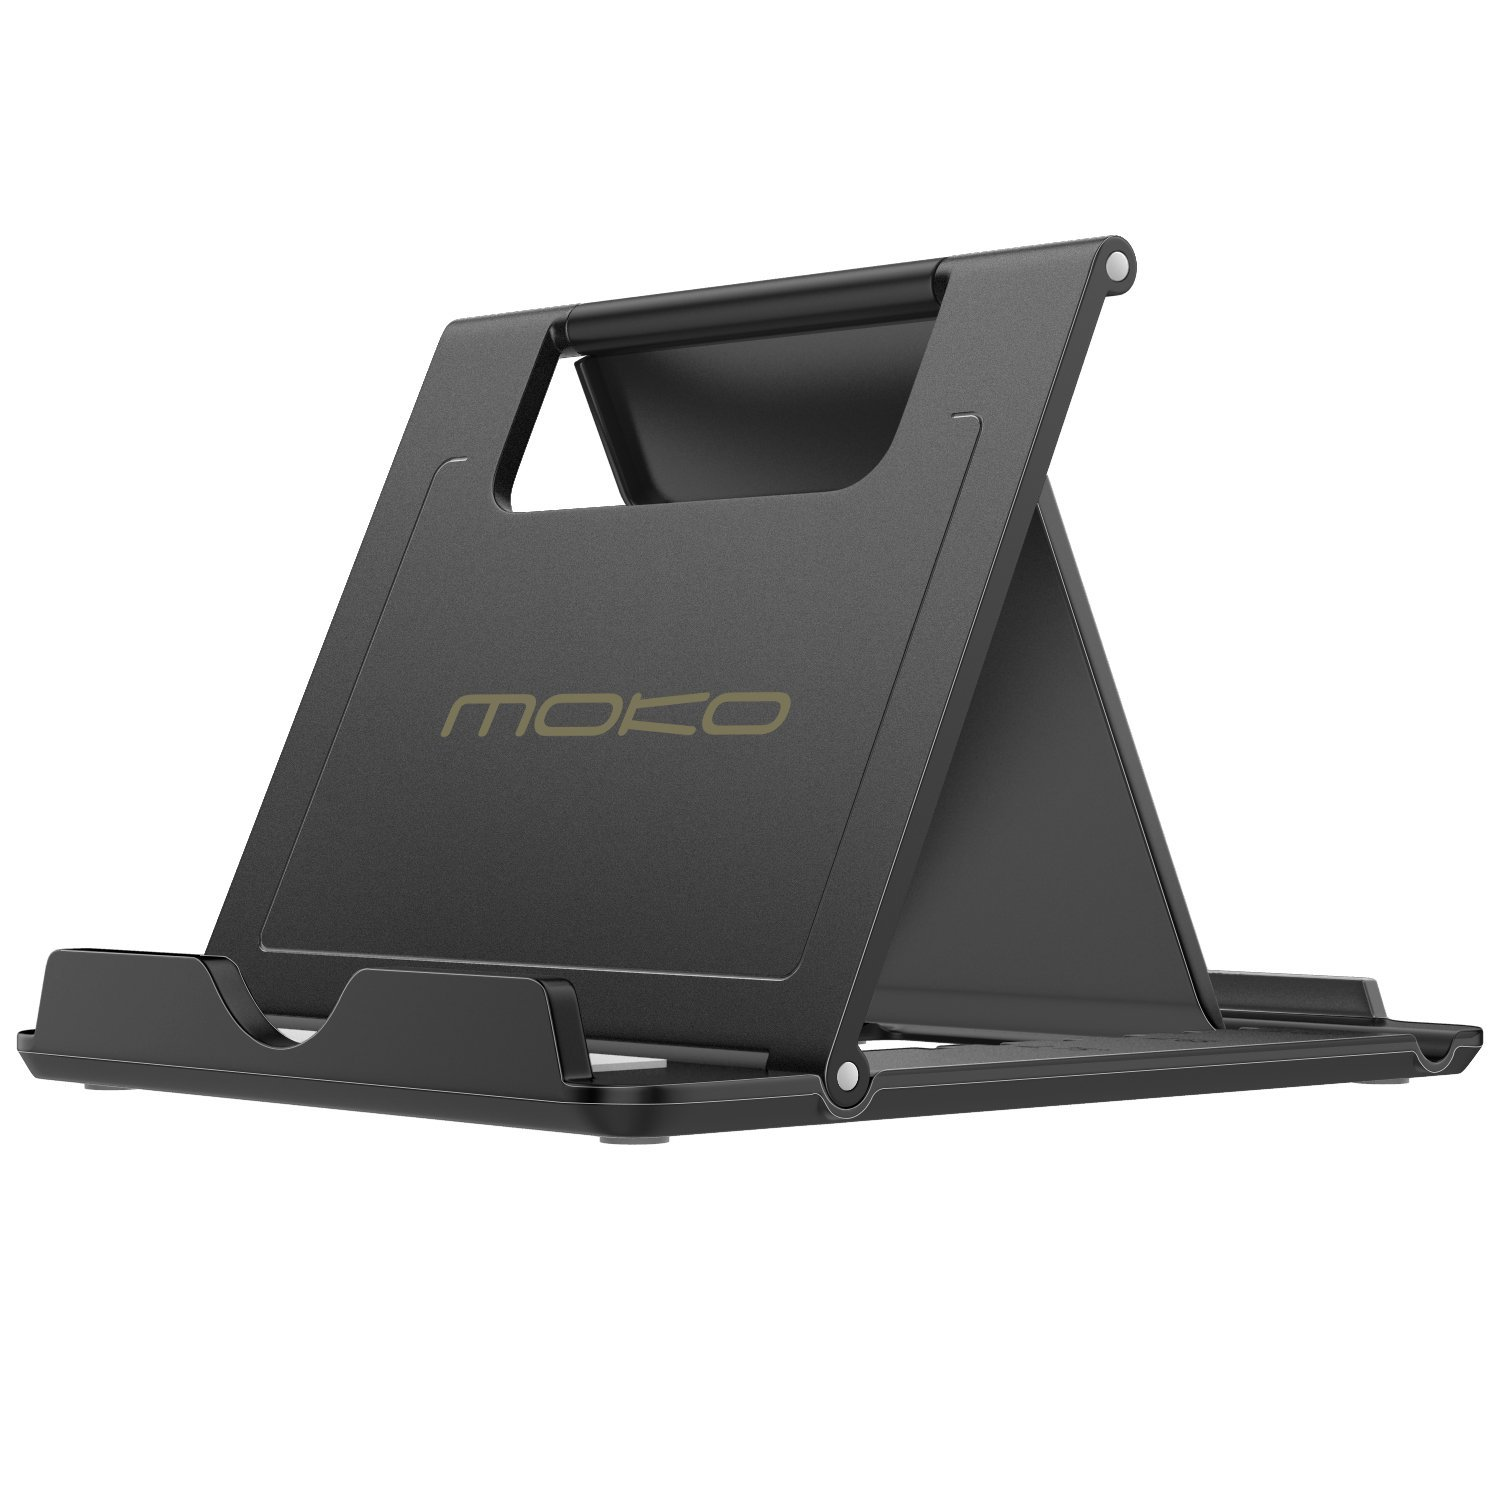 """MoKo Phone/Tablet Stand, Foldable Desktop Holder Fit with iPhone 11 Pro Max/11 Pro/11, iPhone Xs/Xs Max/Xr/X, iPhone SE 2020, iPad Pro 11 2020/10.2/Air 3/Mini 5, Galaxy S20 6.2"""", Black(Large Size)"""